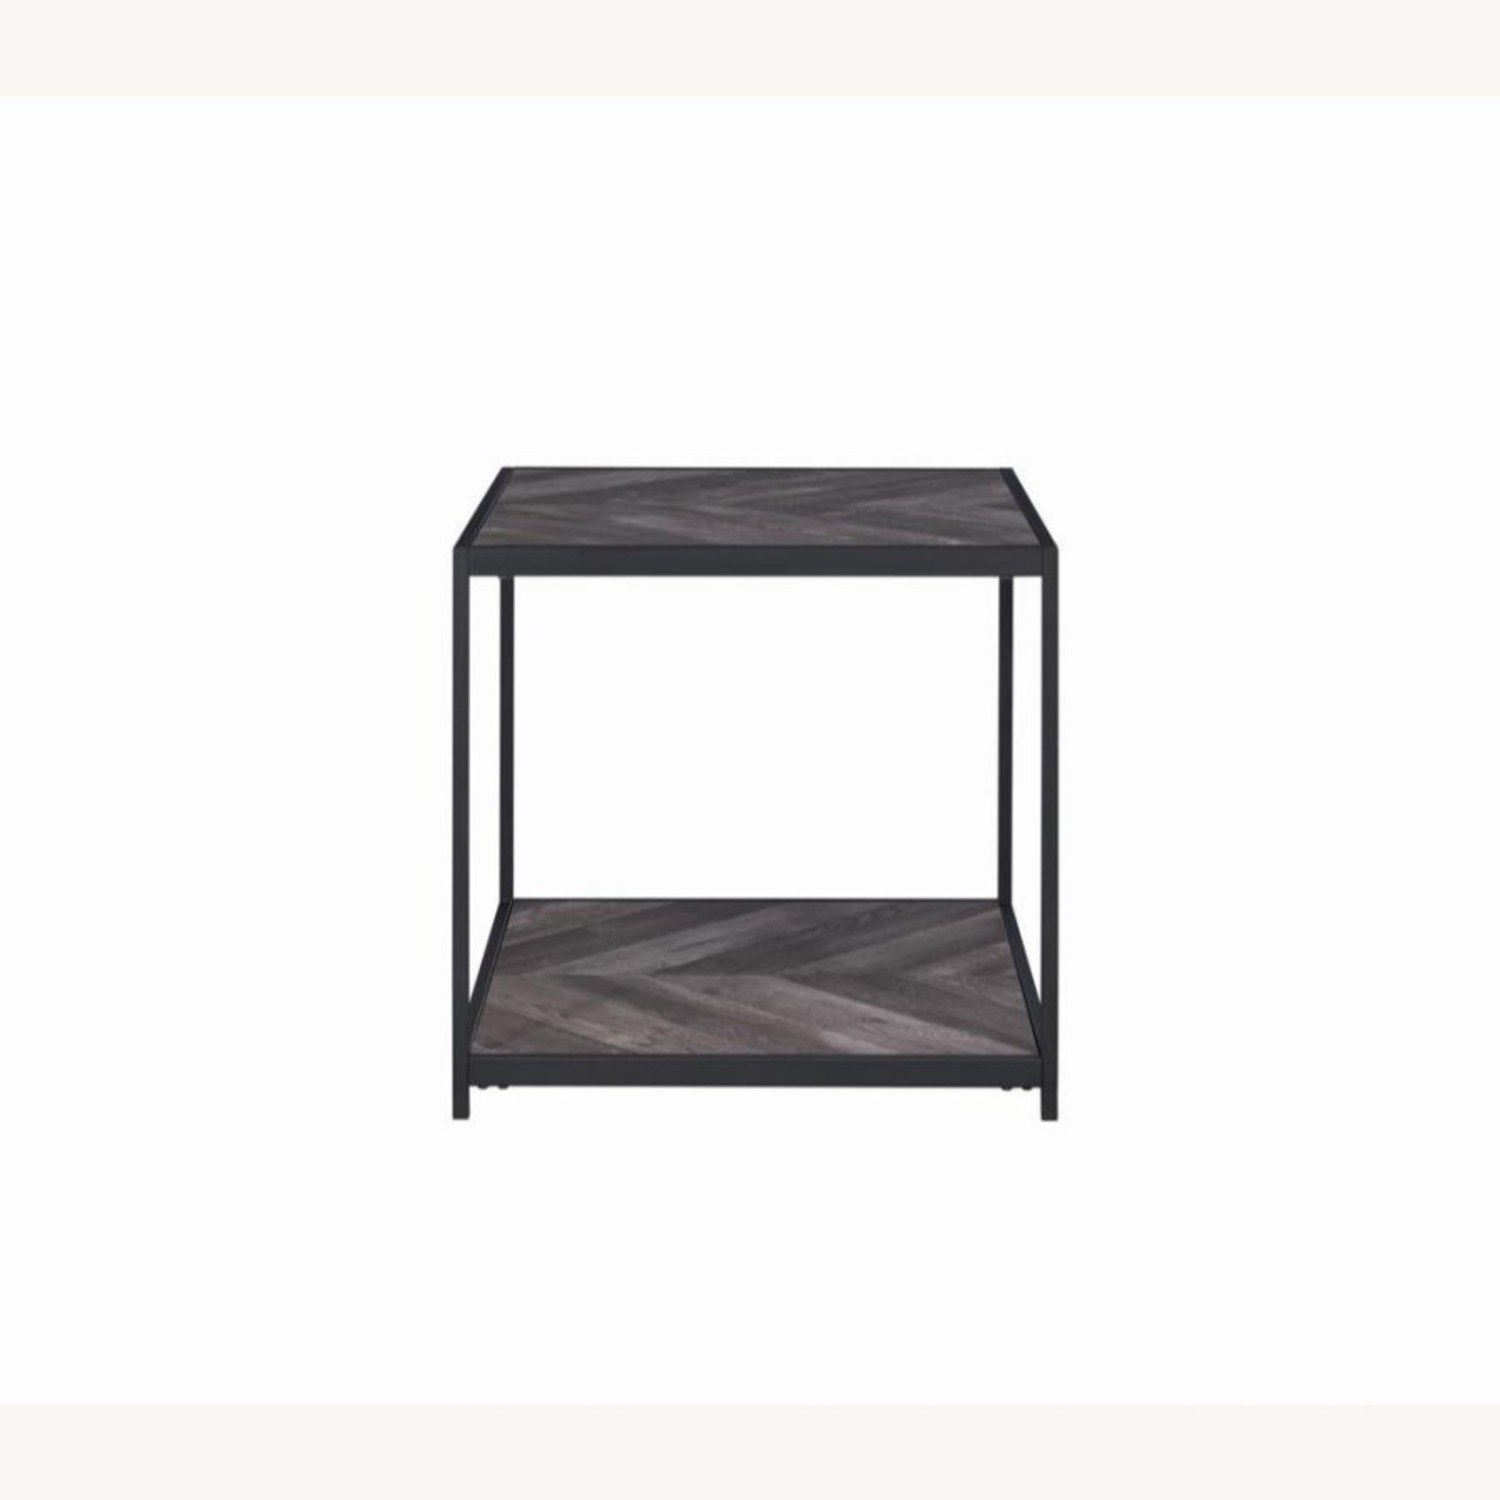 End Table W/ Metal Frame In Sandy Black Finish - image-1